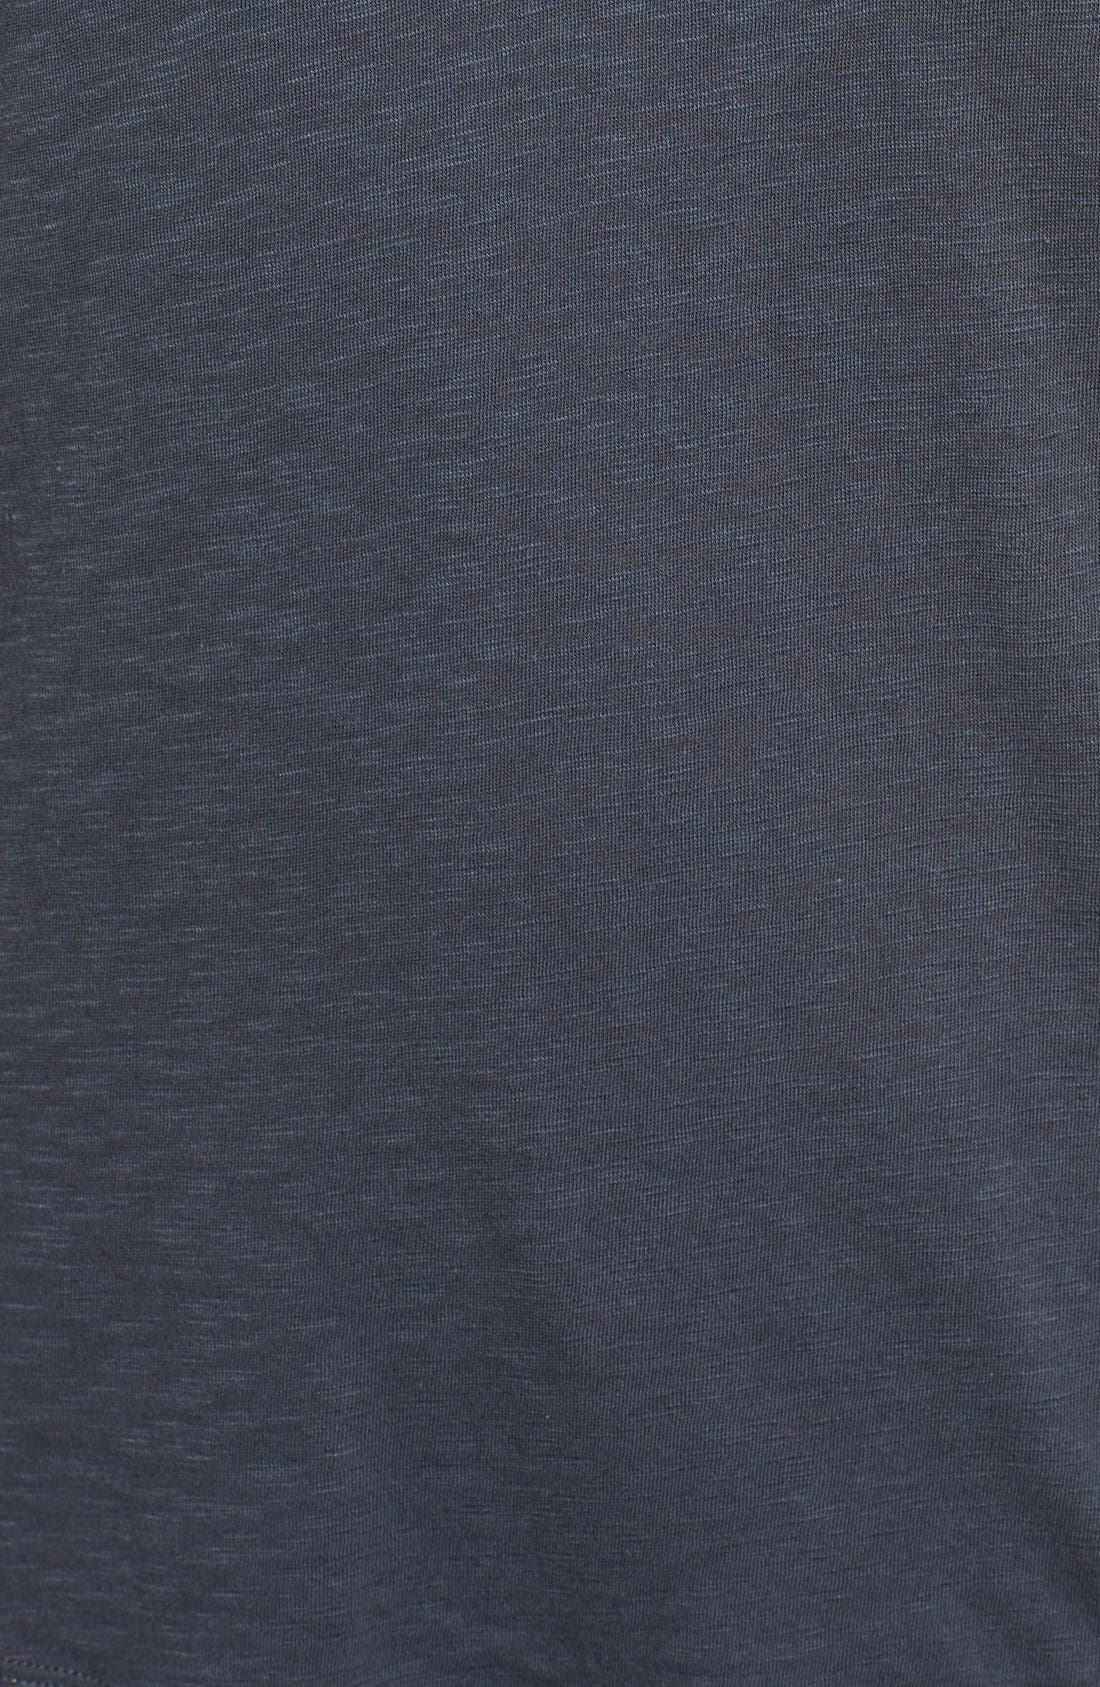 Alternate Image 5  - Caslon® Rounded V-Neck Tee (Regular & Petite)